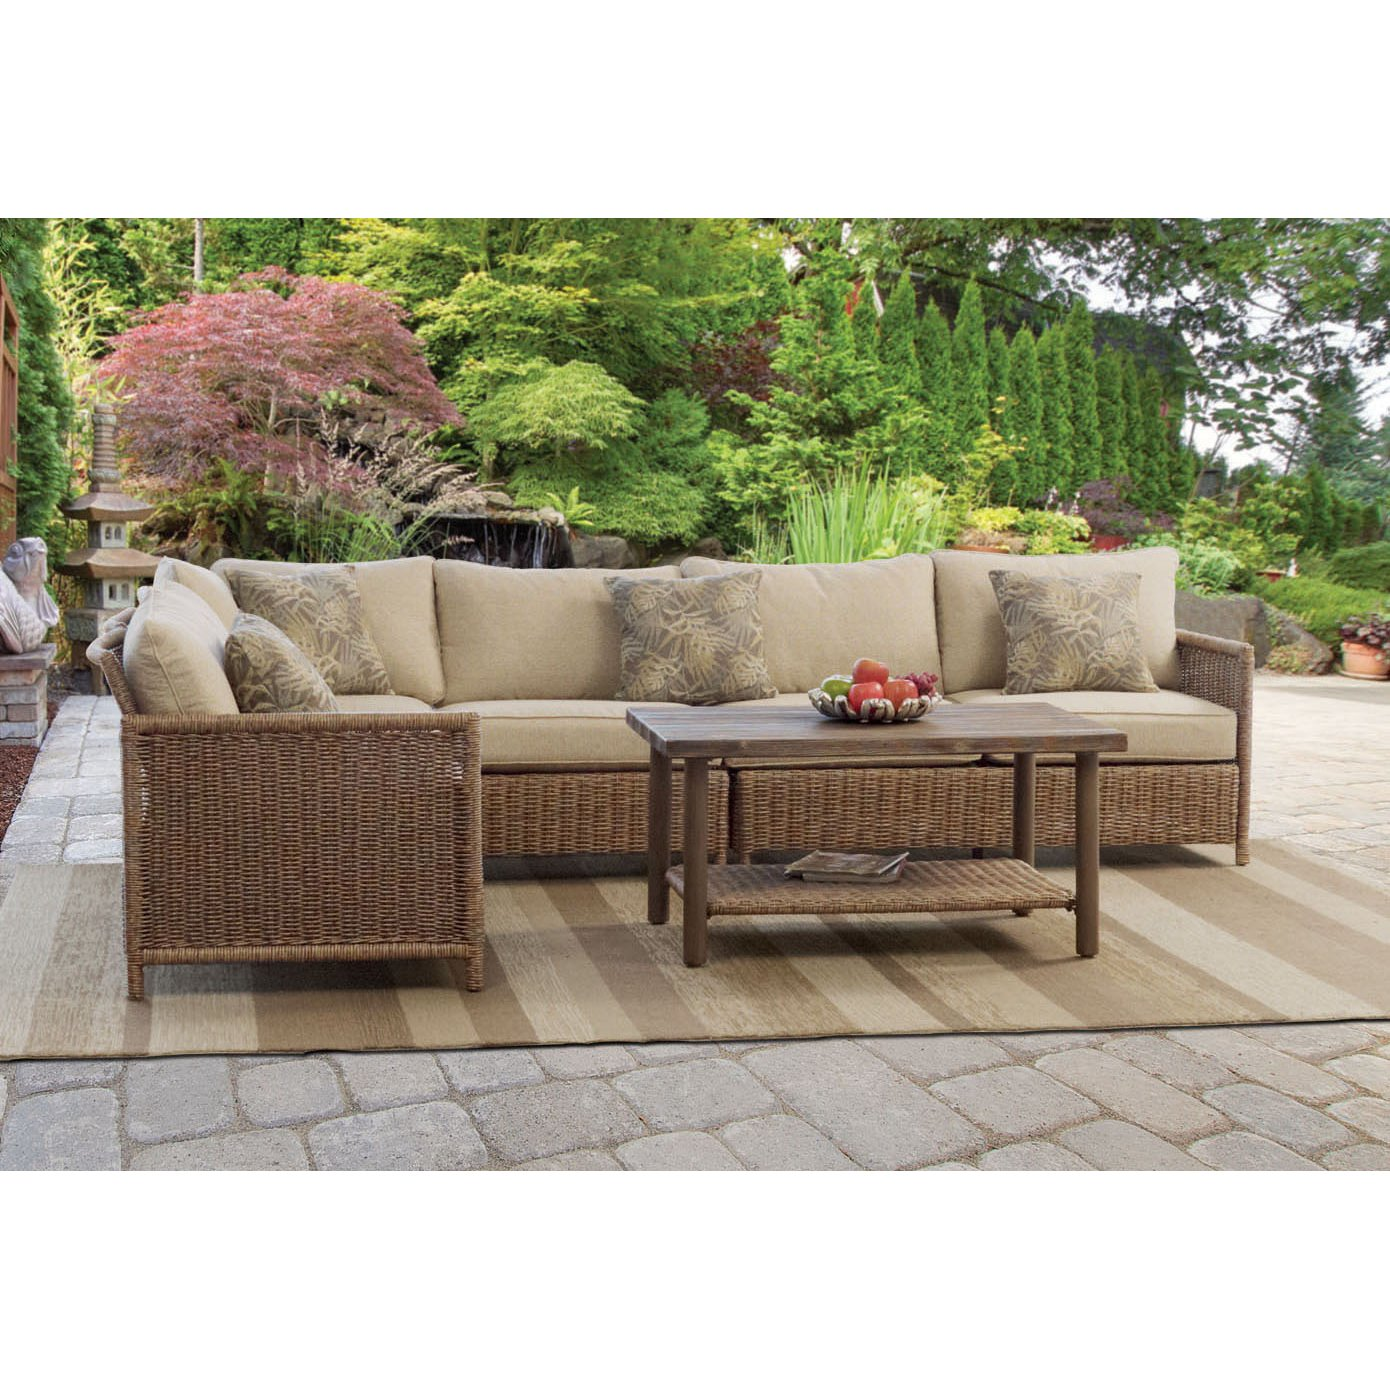 com onionskeen thick ideas sale of sectional furniture cushions new outdoor patio concept